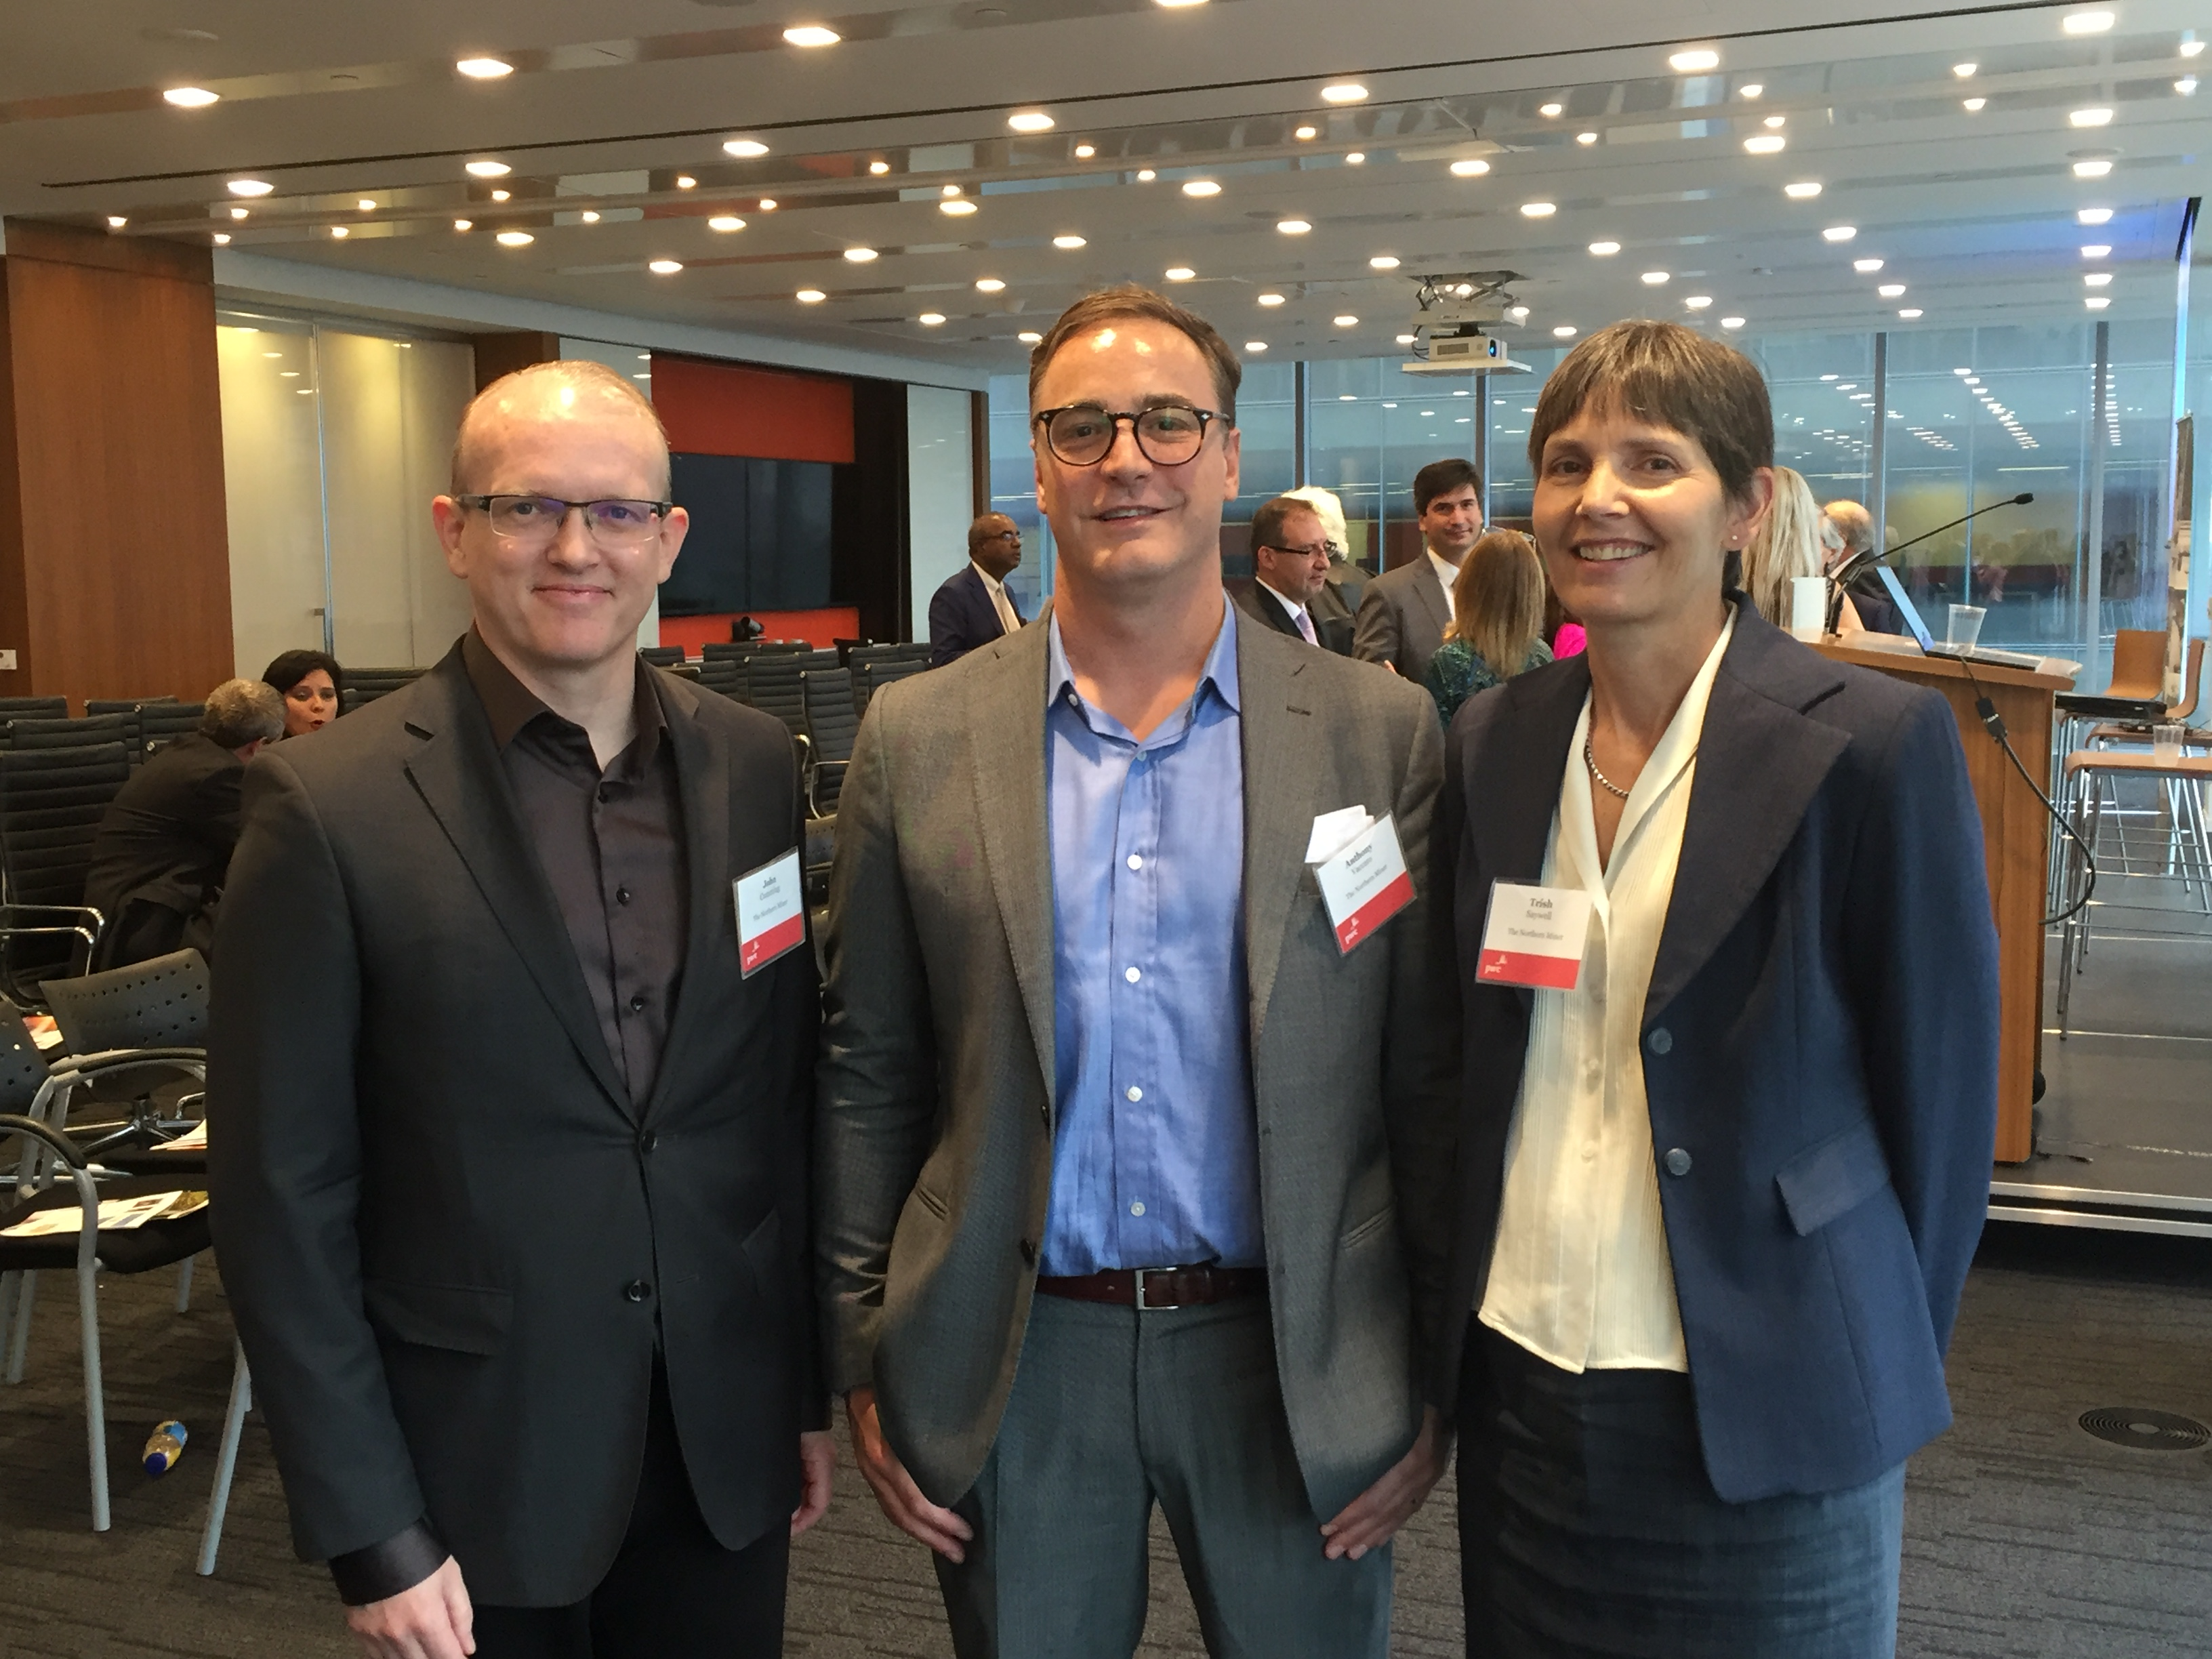 """Northern Miner hosts at the Miner's """"Focus on Argentina"""" symposium at PWC Canada's offices in Toronto in September, from left: John Cumming, editor-in-chief; Anthony Vaccaro, publisher; and Trish Saywell, senior staff writer. Photo by Salma Tarikh."""